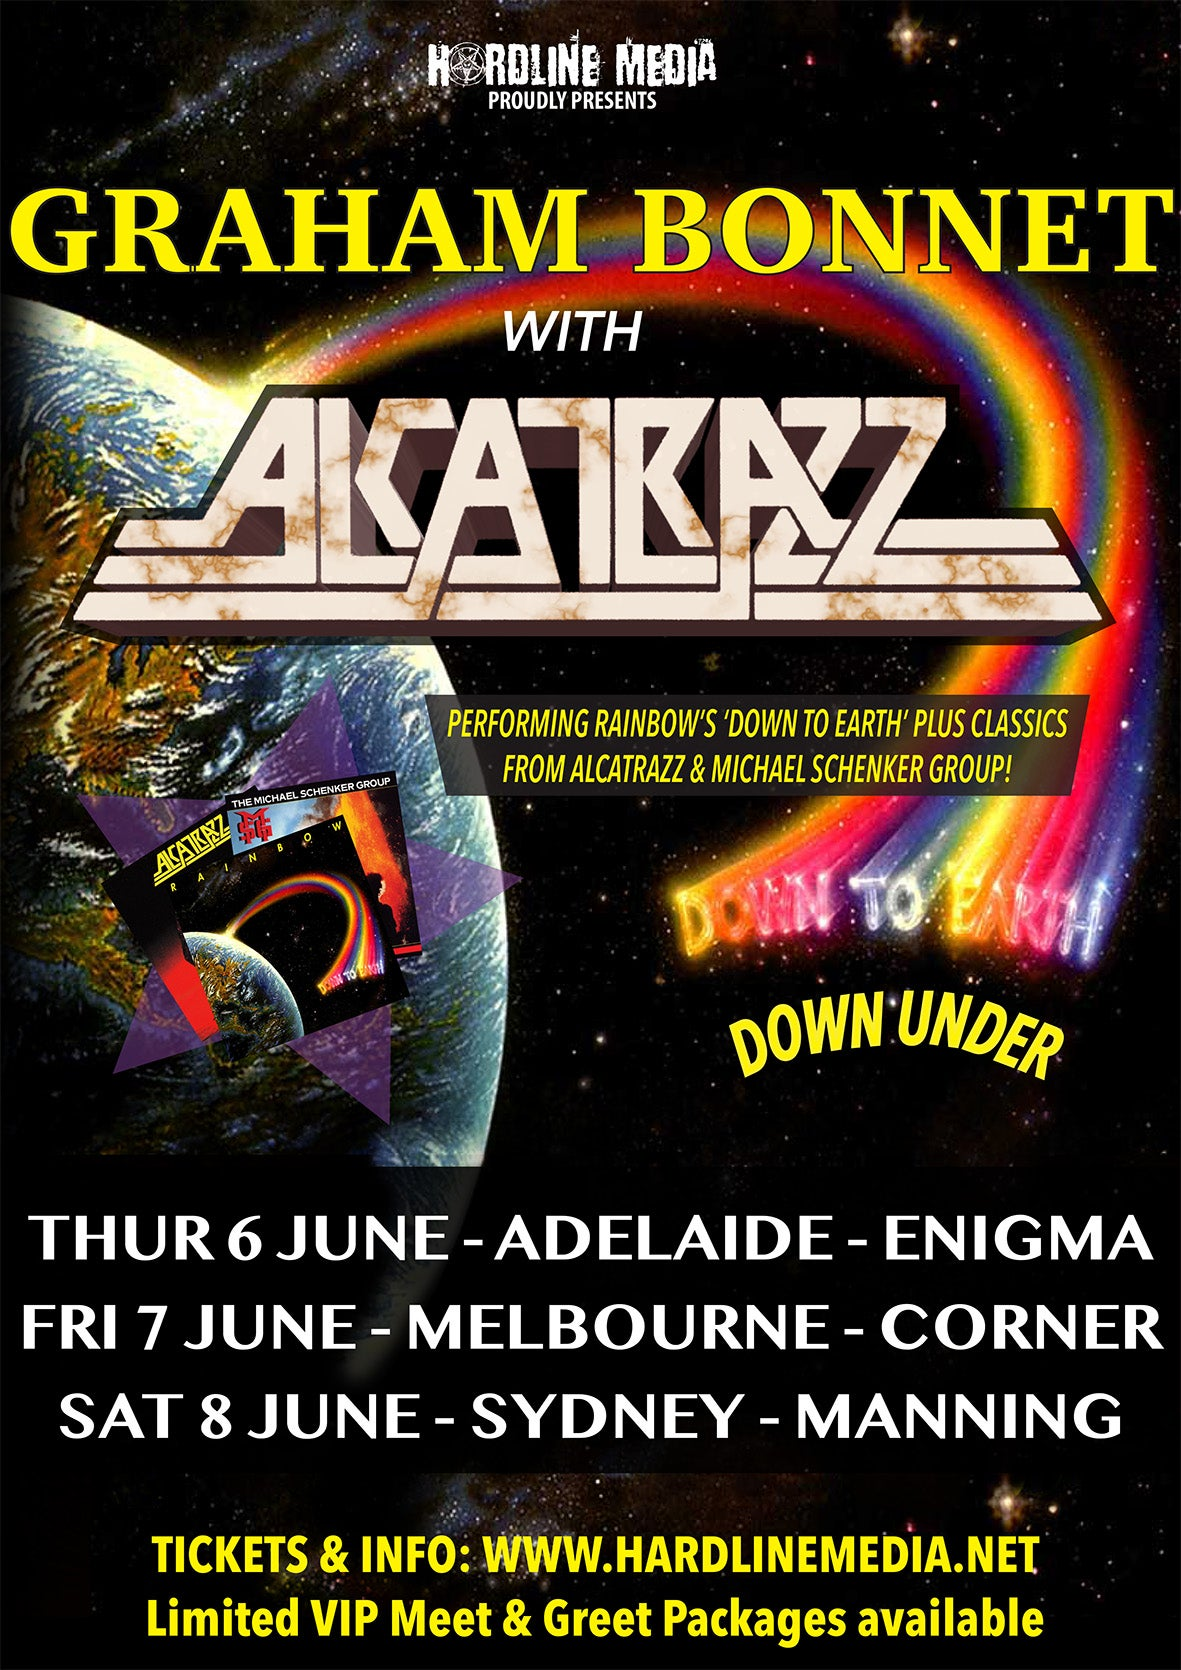 Image of GA TICKET - GRAHAM BONNET with ALCATRAZZ - ADELAIDE, ENIGMA - THURS 6 JUNE